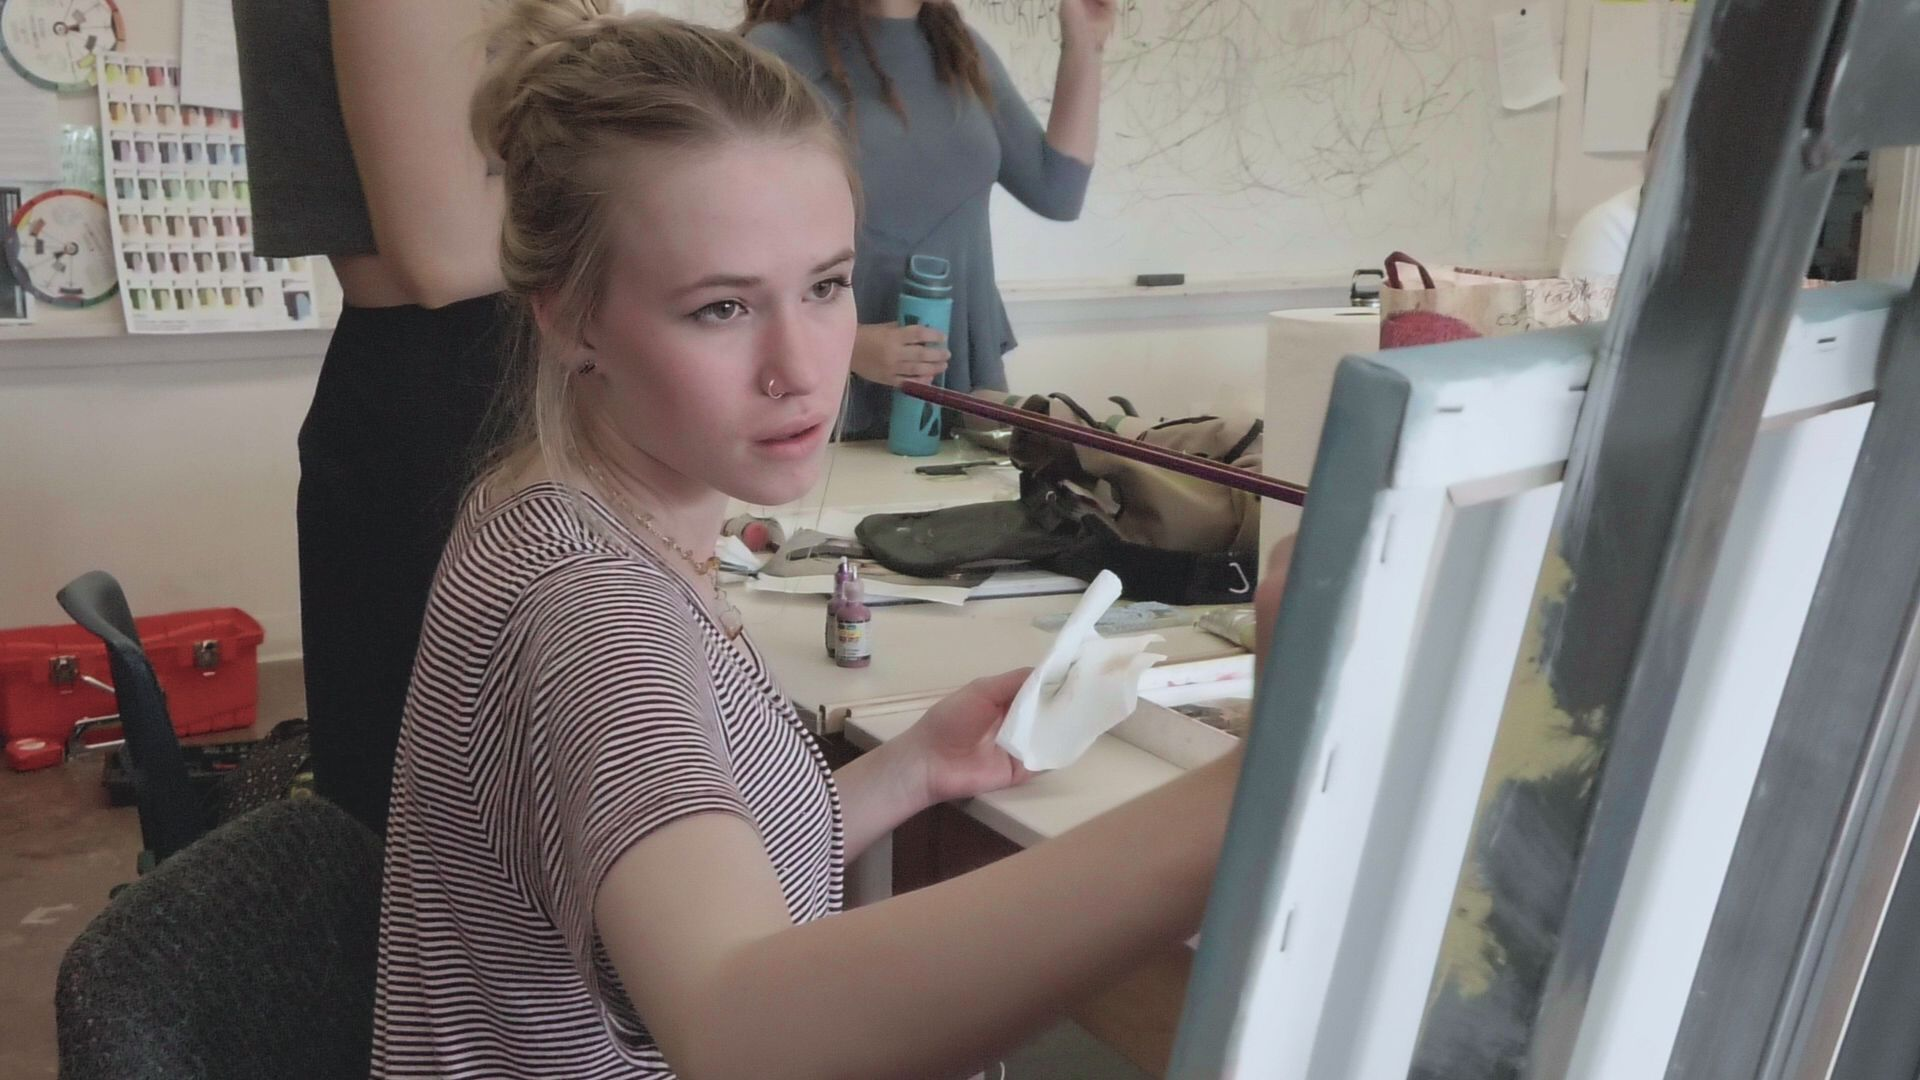 A female teen is sitting in an art class, holding a long paint brush, painting on a canvas.